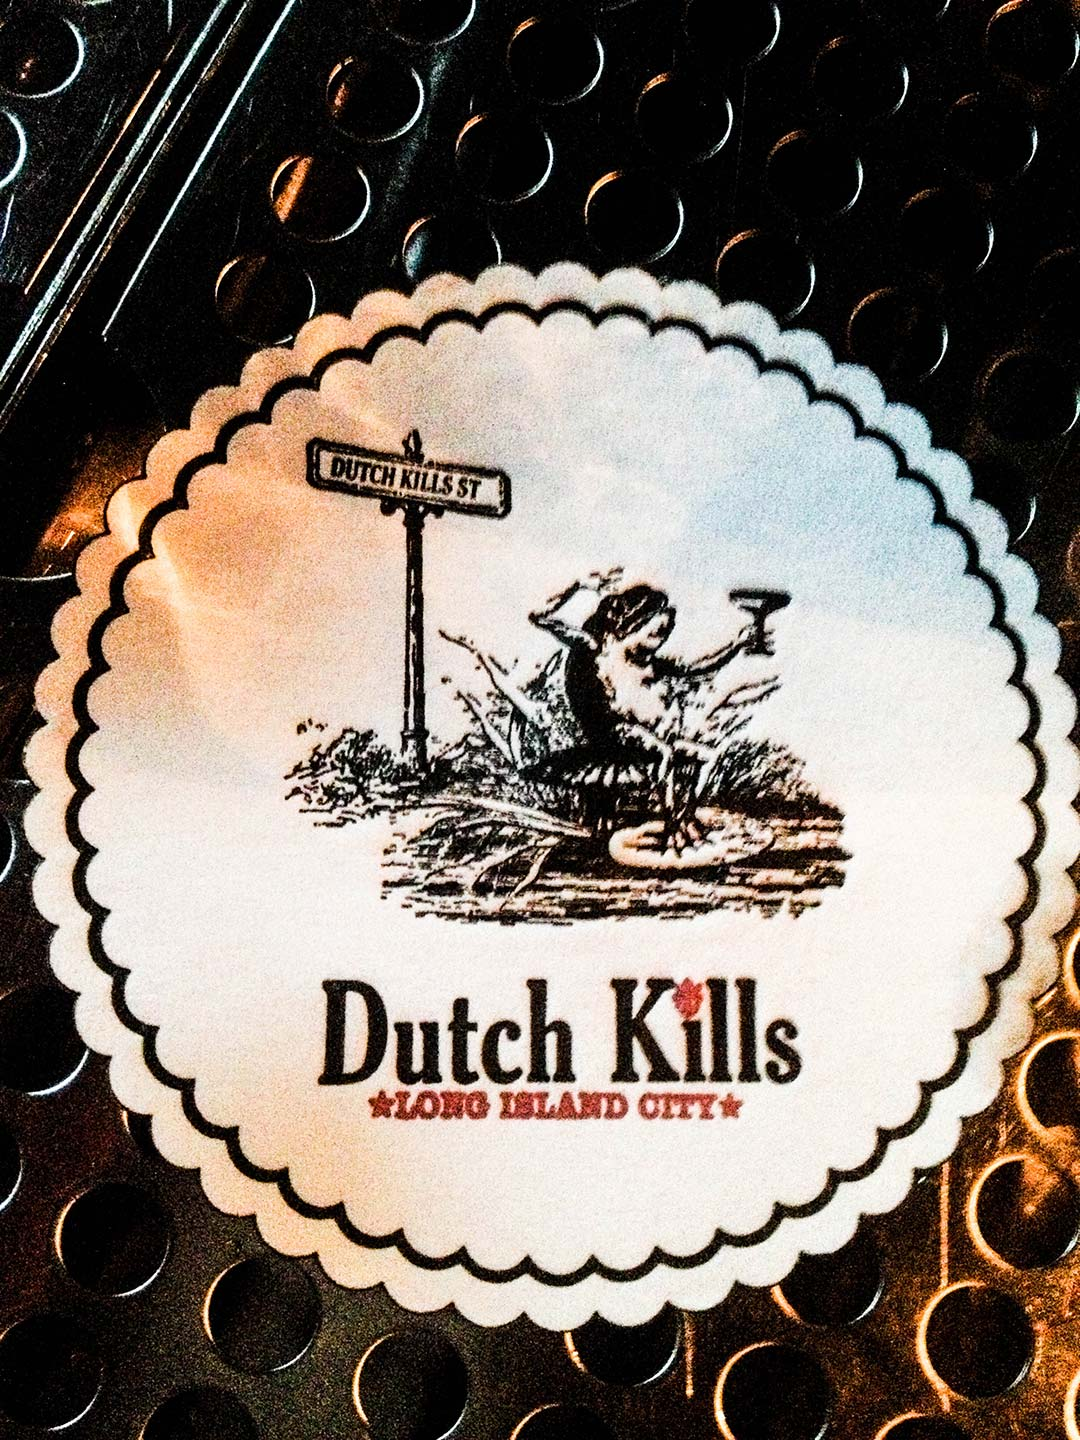 Dutch Kills frog with cocktail drink coaster letterpress printed with scalloped edges